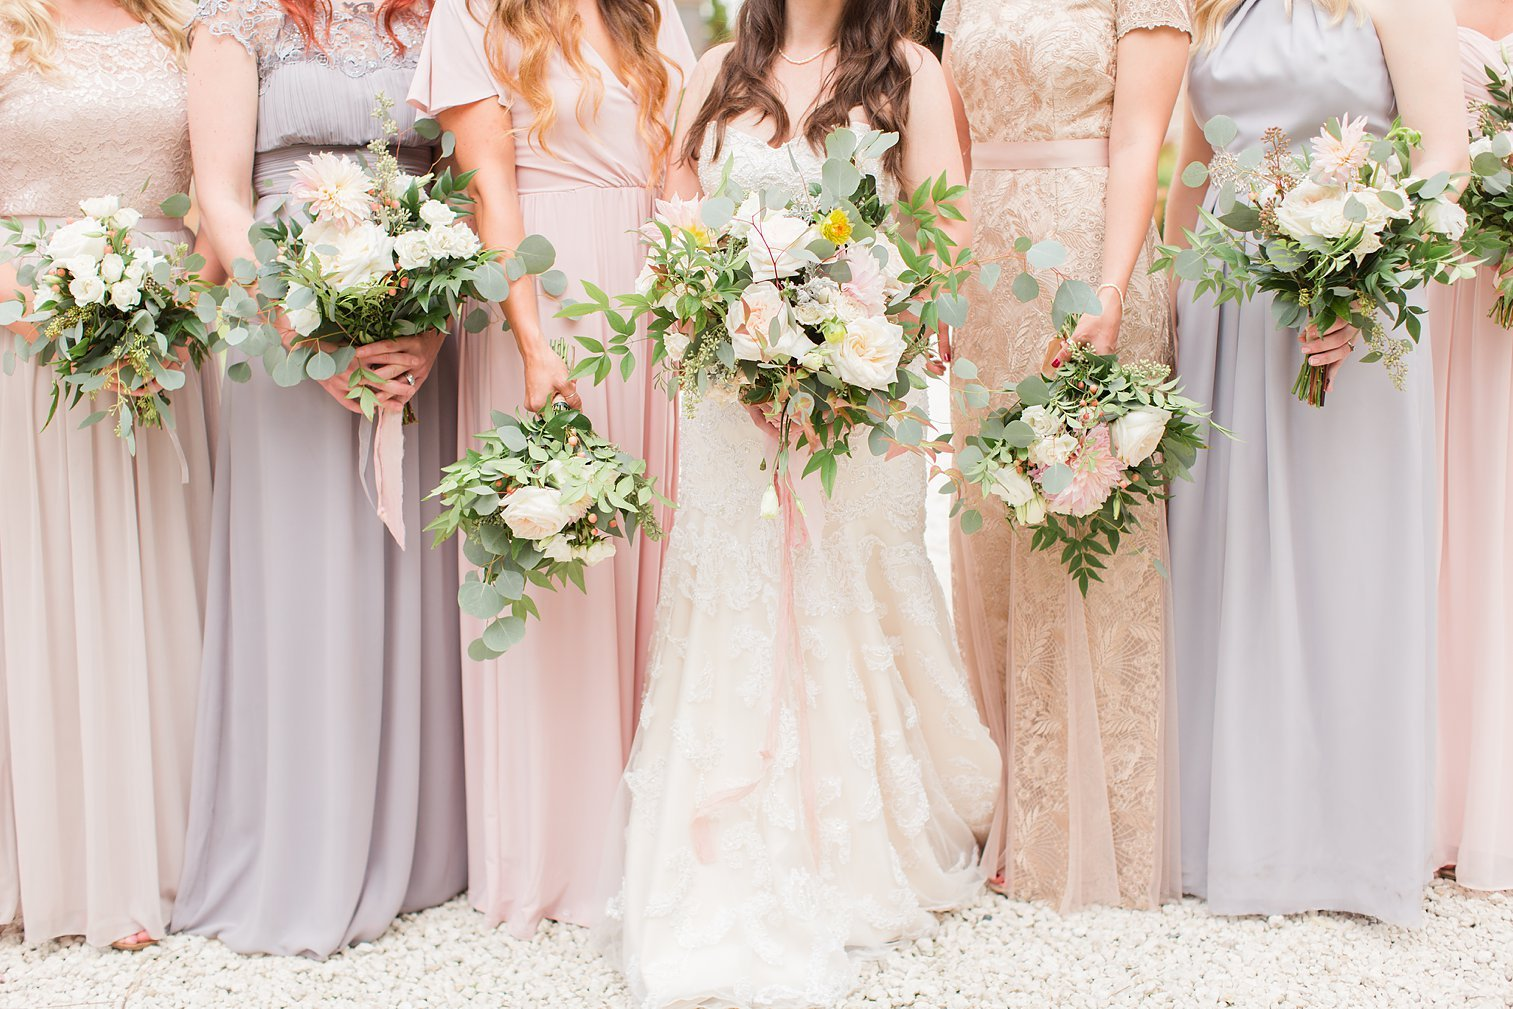 Blush-bridesmaid dresses-bouquets-bride-wedding party-beautiful-mismatched dresses